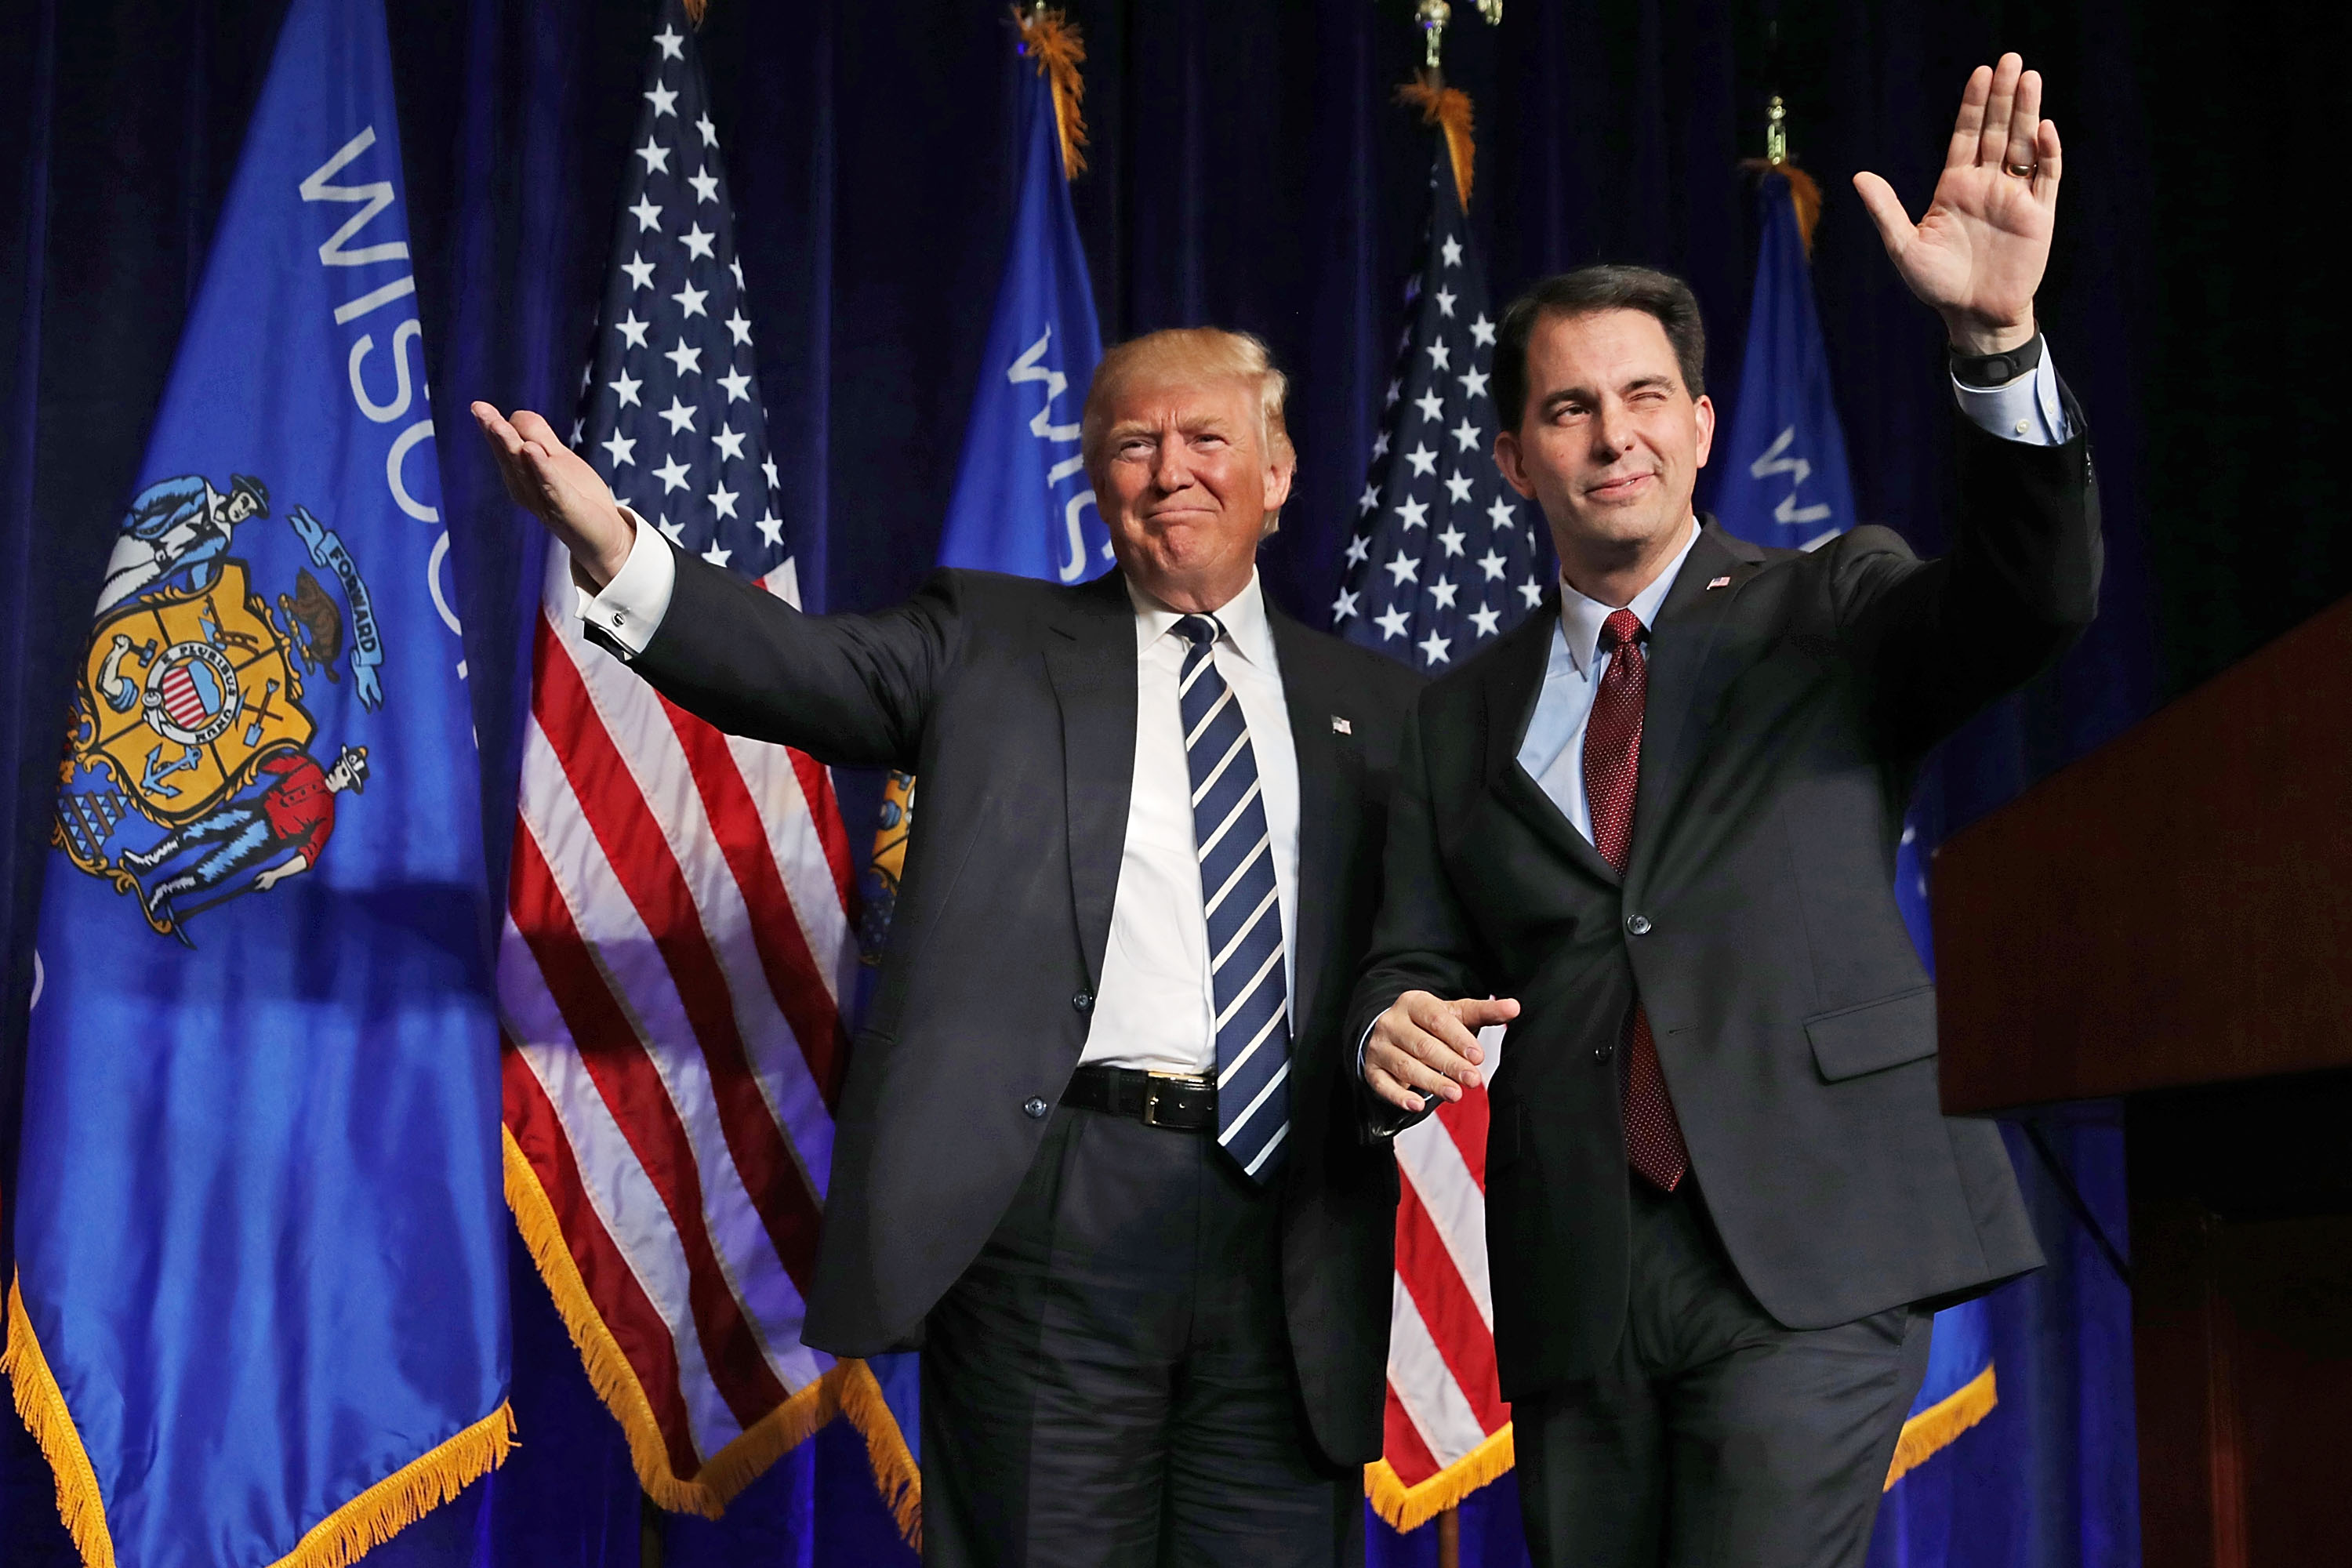 Republican presidential nominee Donald Trump (L) is welcomed to the stage by outgoing Wisconsin Governor Scott Walker during a campaign rally at the W.L. Zorn Arena November 1, 2016 in Altoona, Wisconsin. Chip Somodevilla/Getty Images